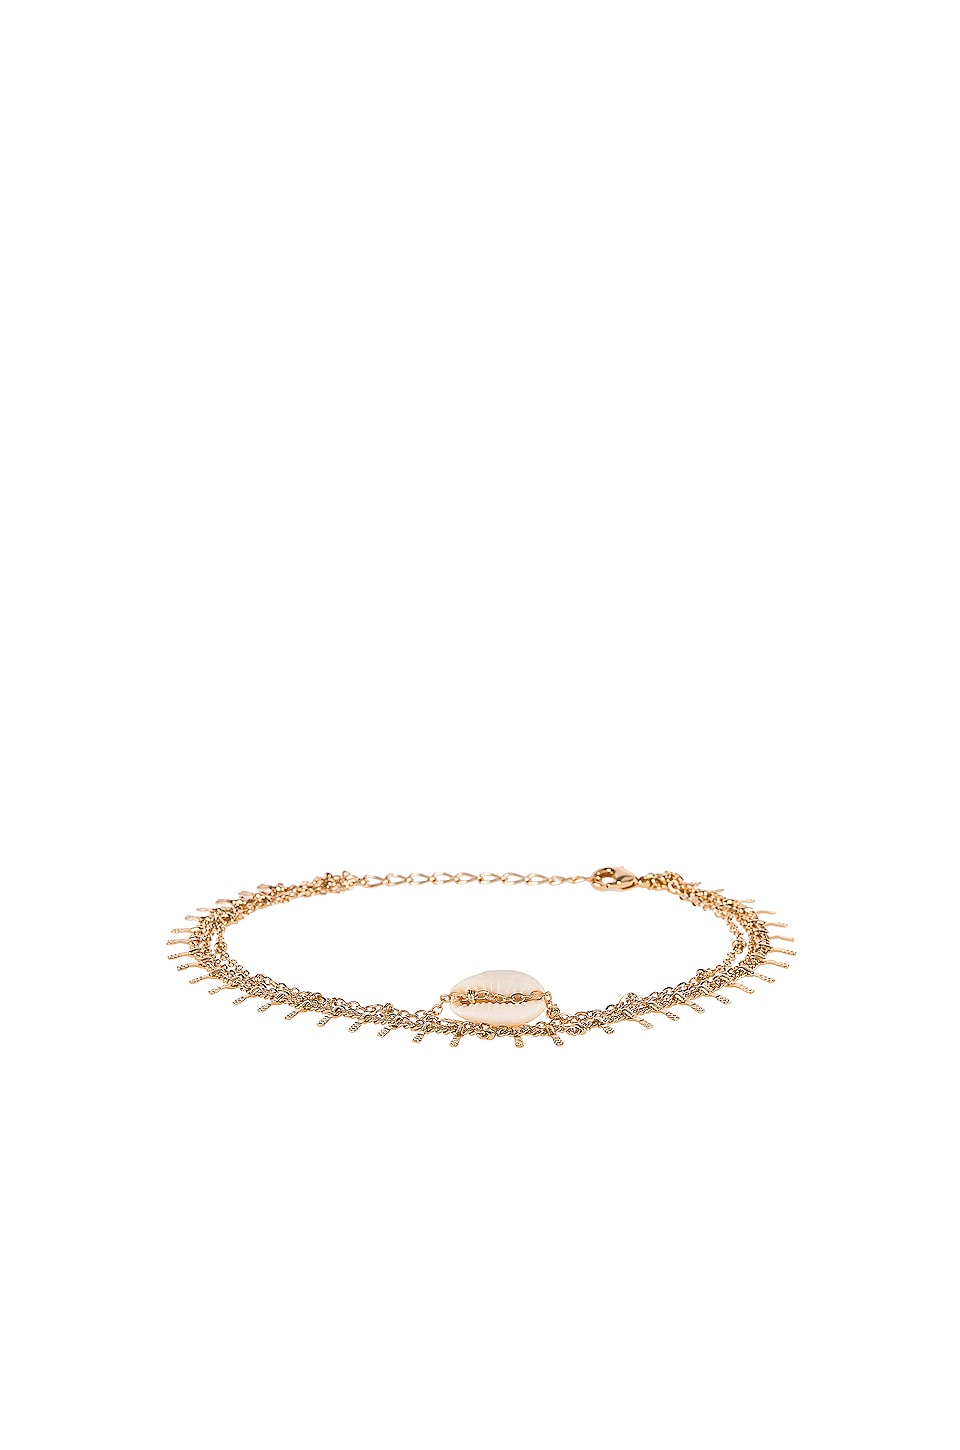 EIGHT by GJENMI JEWELRY Hawaii Multi Strand Anklet in Gold